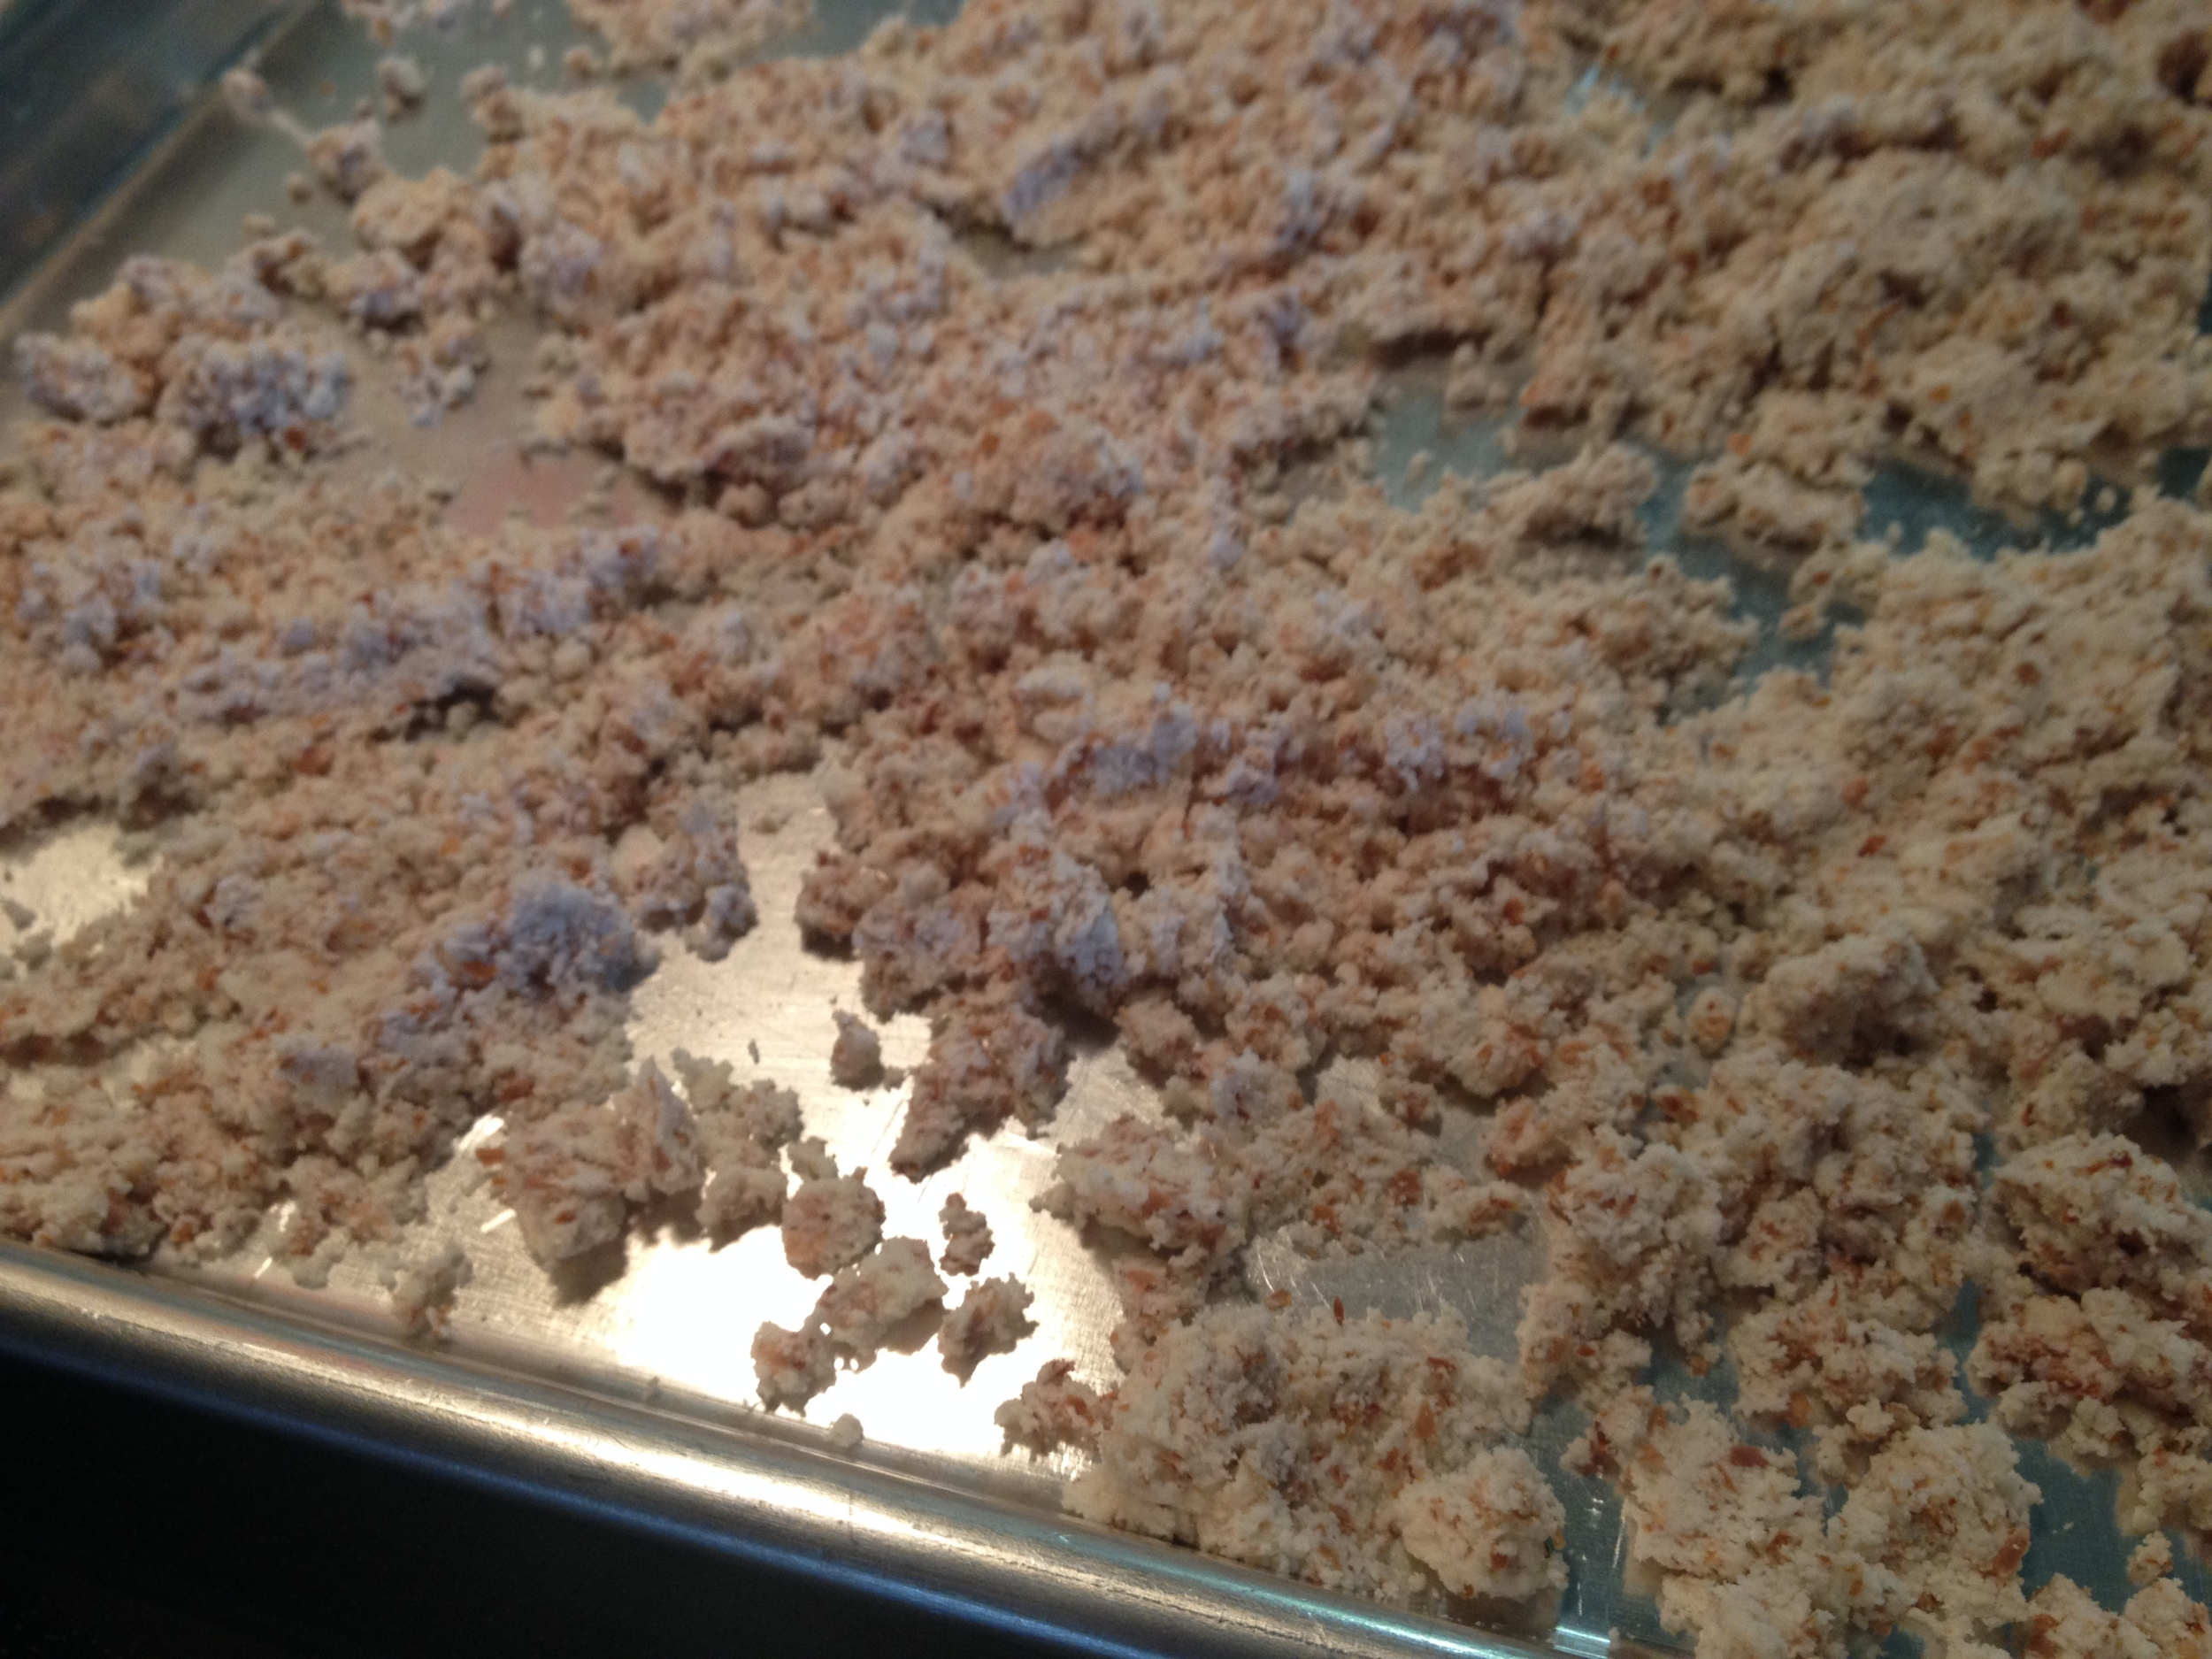 I even made homemade almond meal with the leftover ... almond shards? No idea what the right term is.